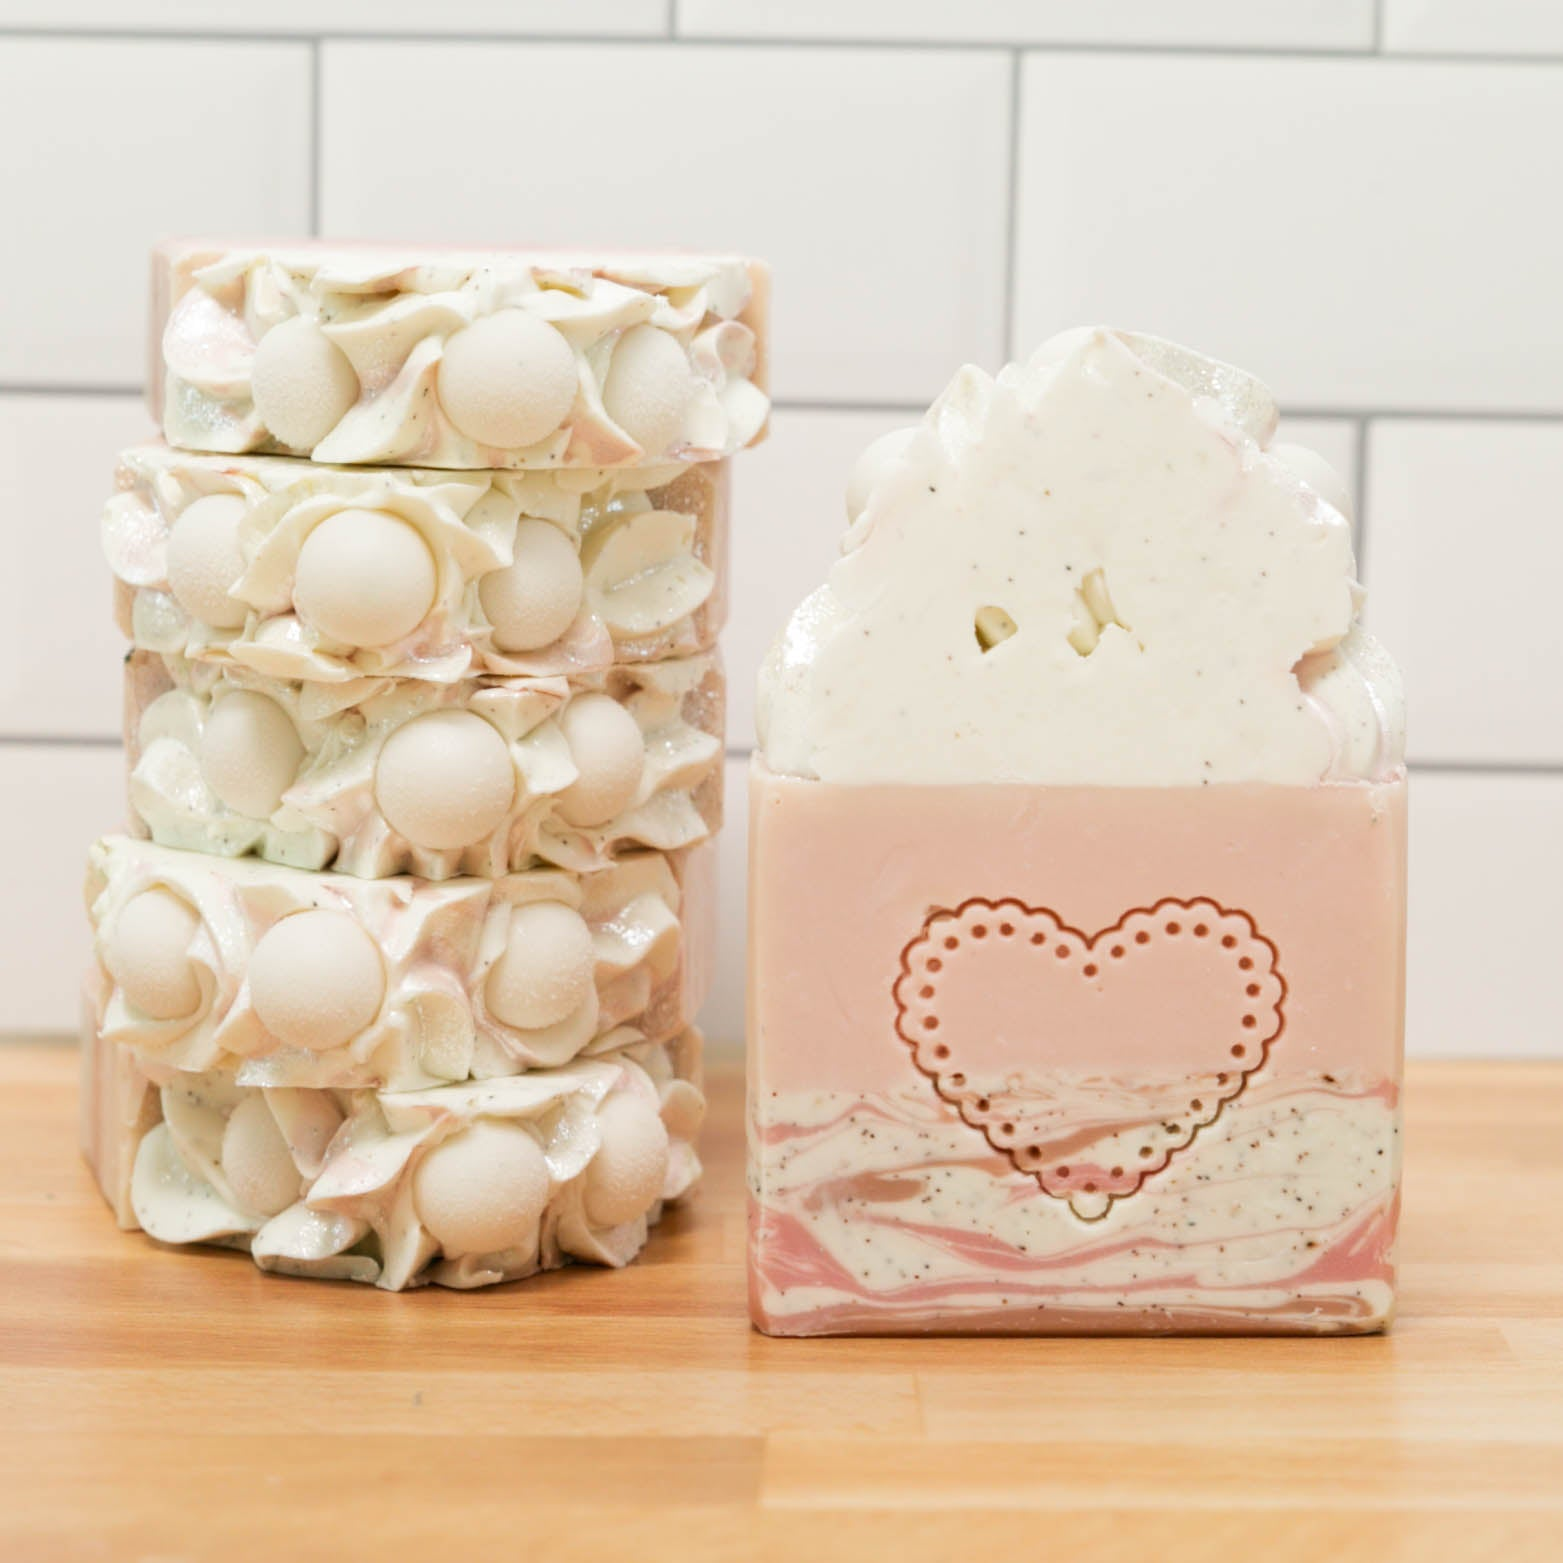 Lace and Pearls Frosted Soap